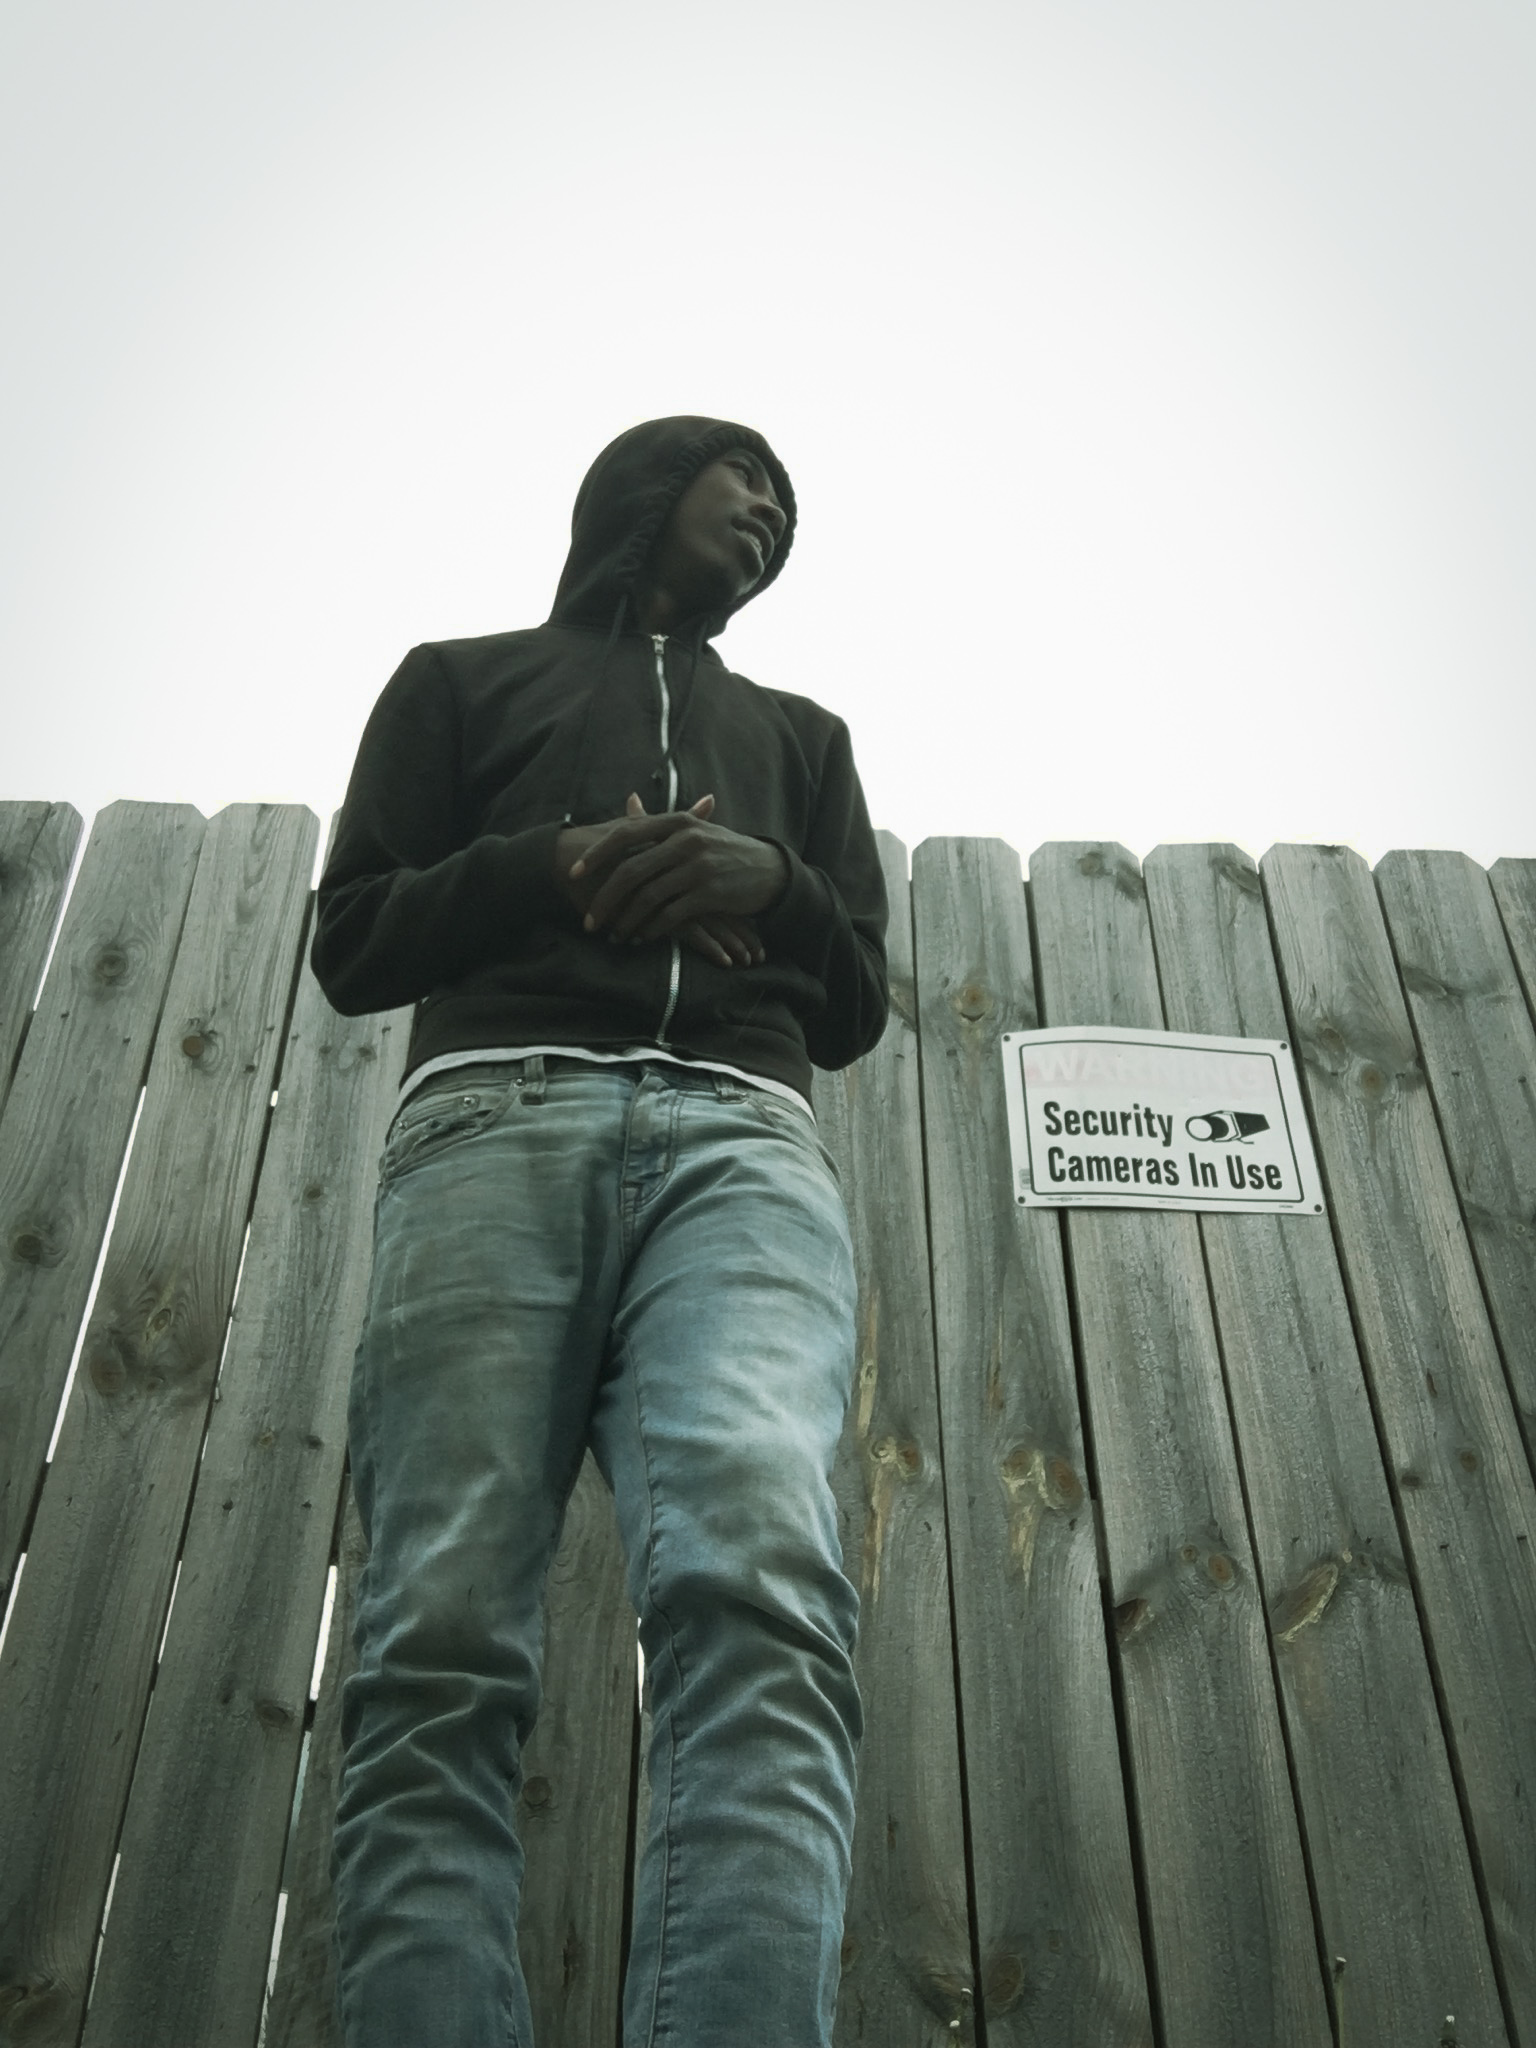 """Campaign Haze - This young man has the ambition and drive to make some really creative pieces, as evident in his first release """"Yuh"""". Creativity comes from every aspect of life, especially the streets of Cleveland. Look for more bangers from him in the near future!"""